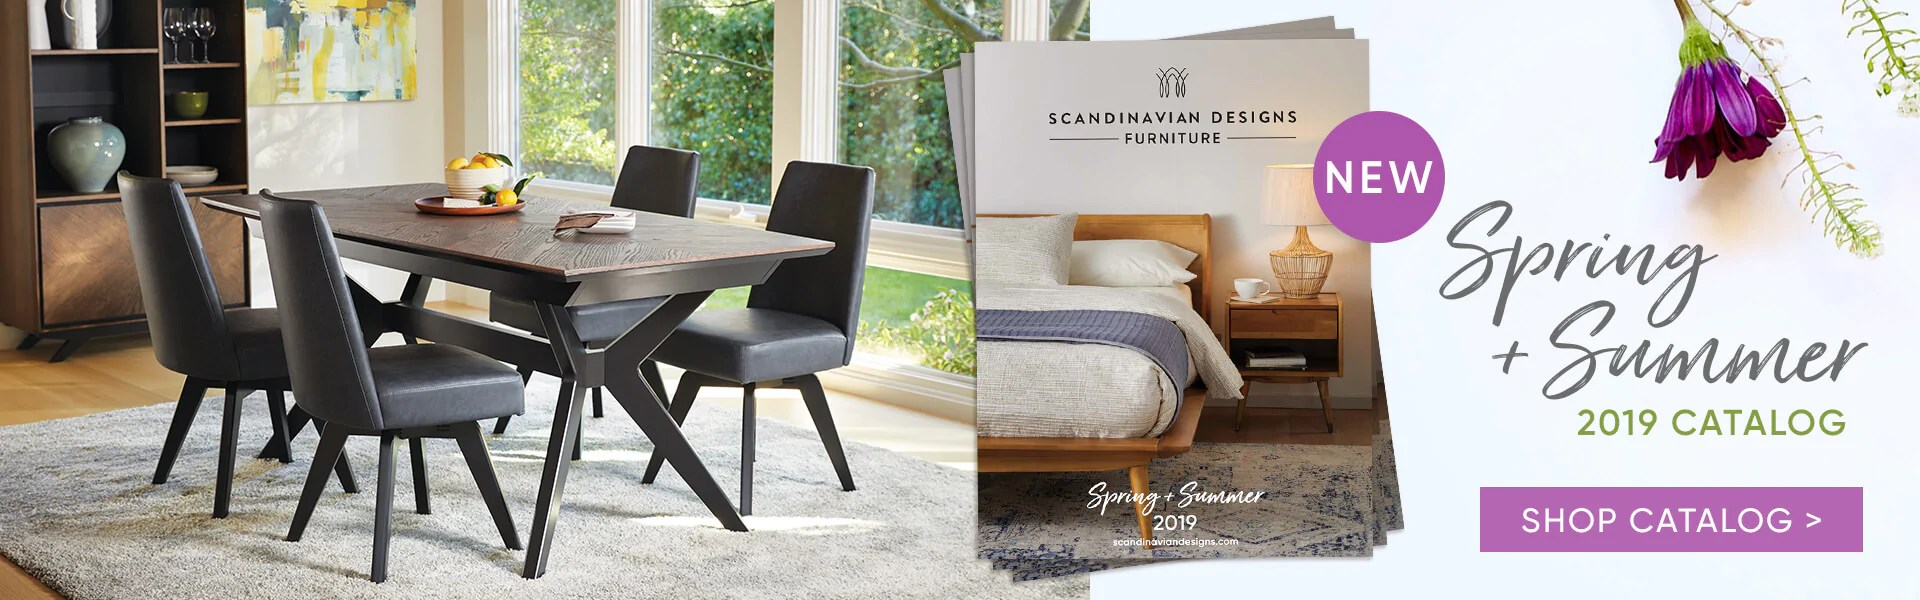 Meubles Accent Furniture Rockland Scandinavian Designs Quality Modern Contemporary Home Furniture